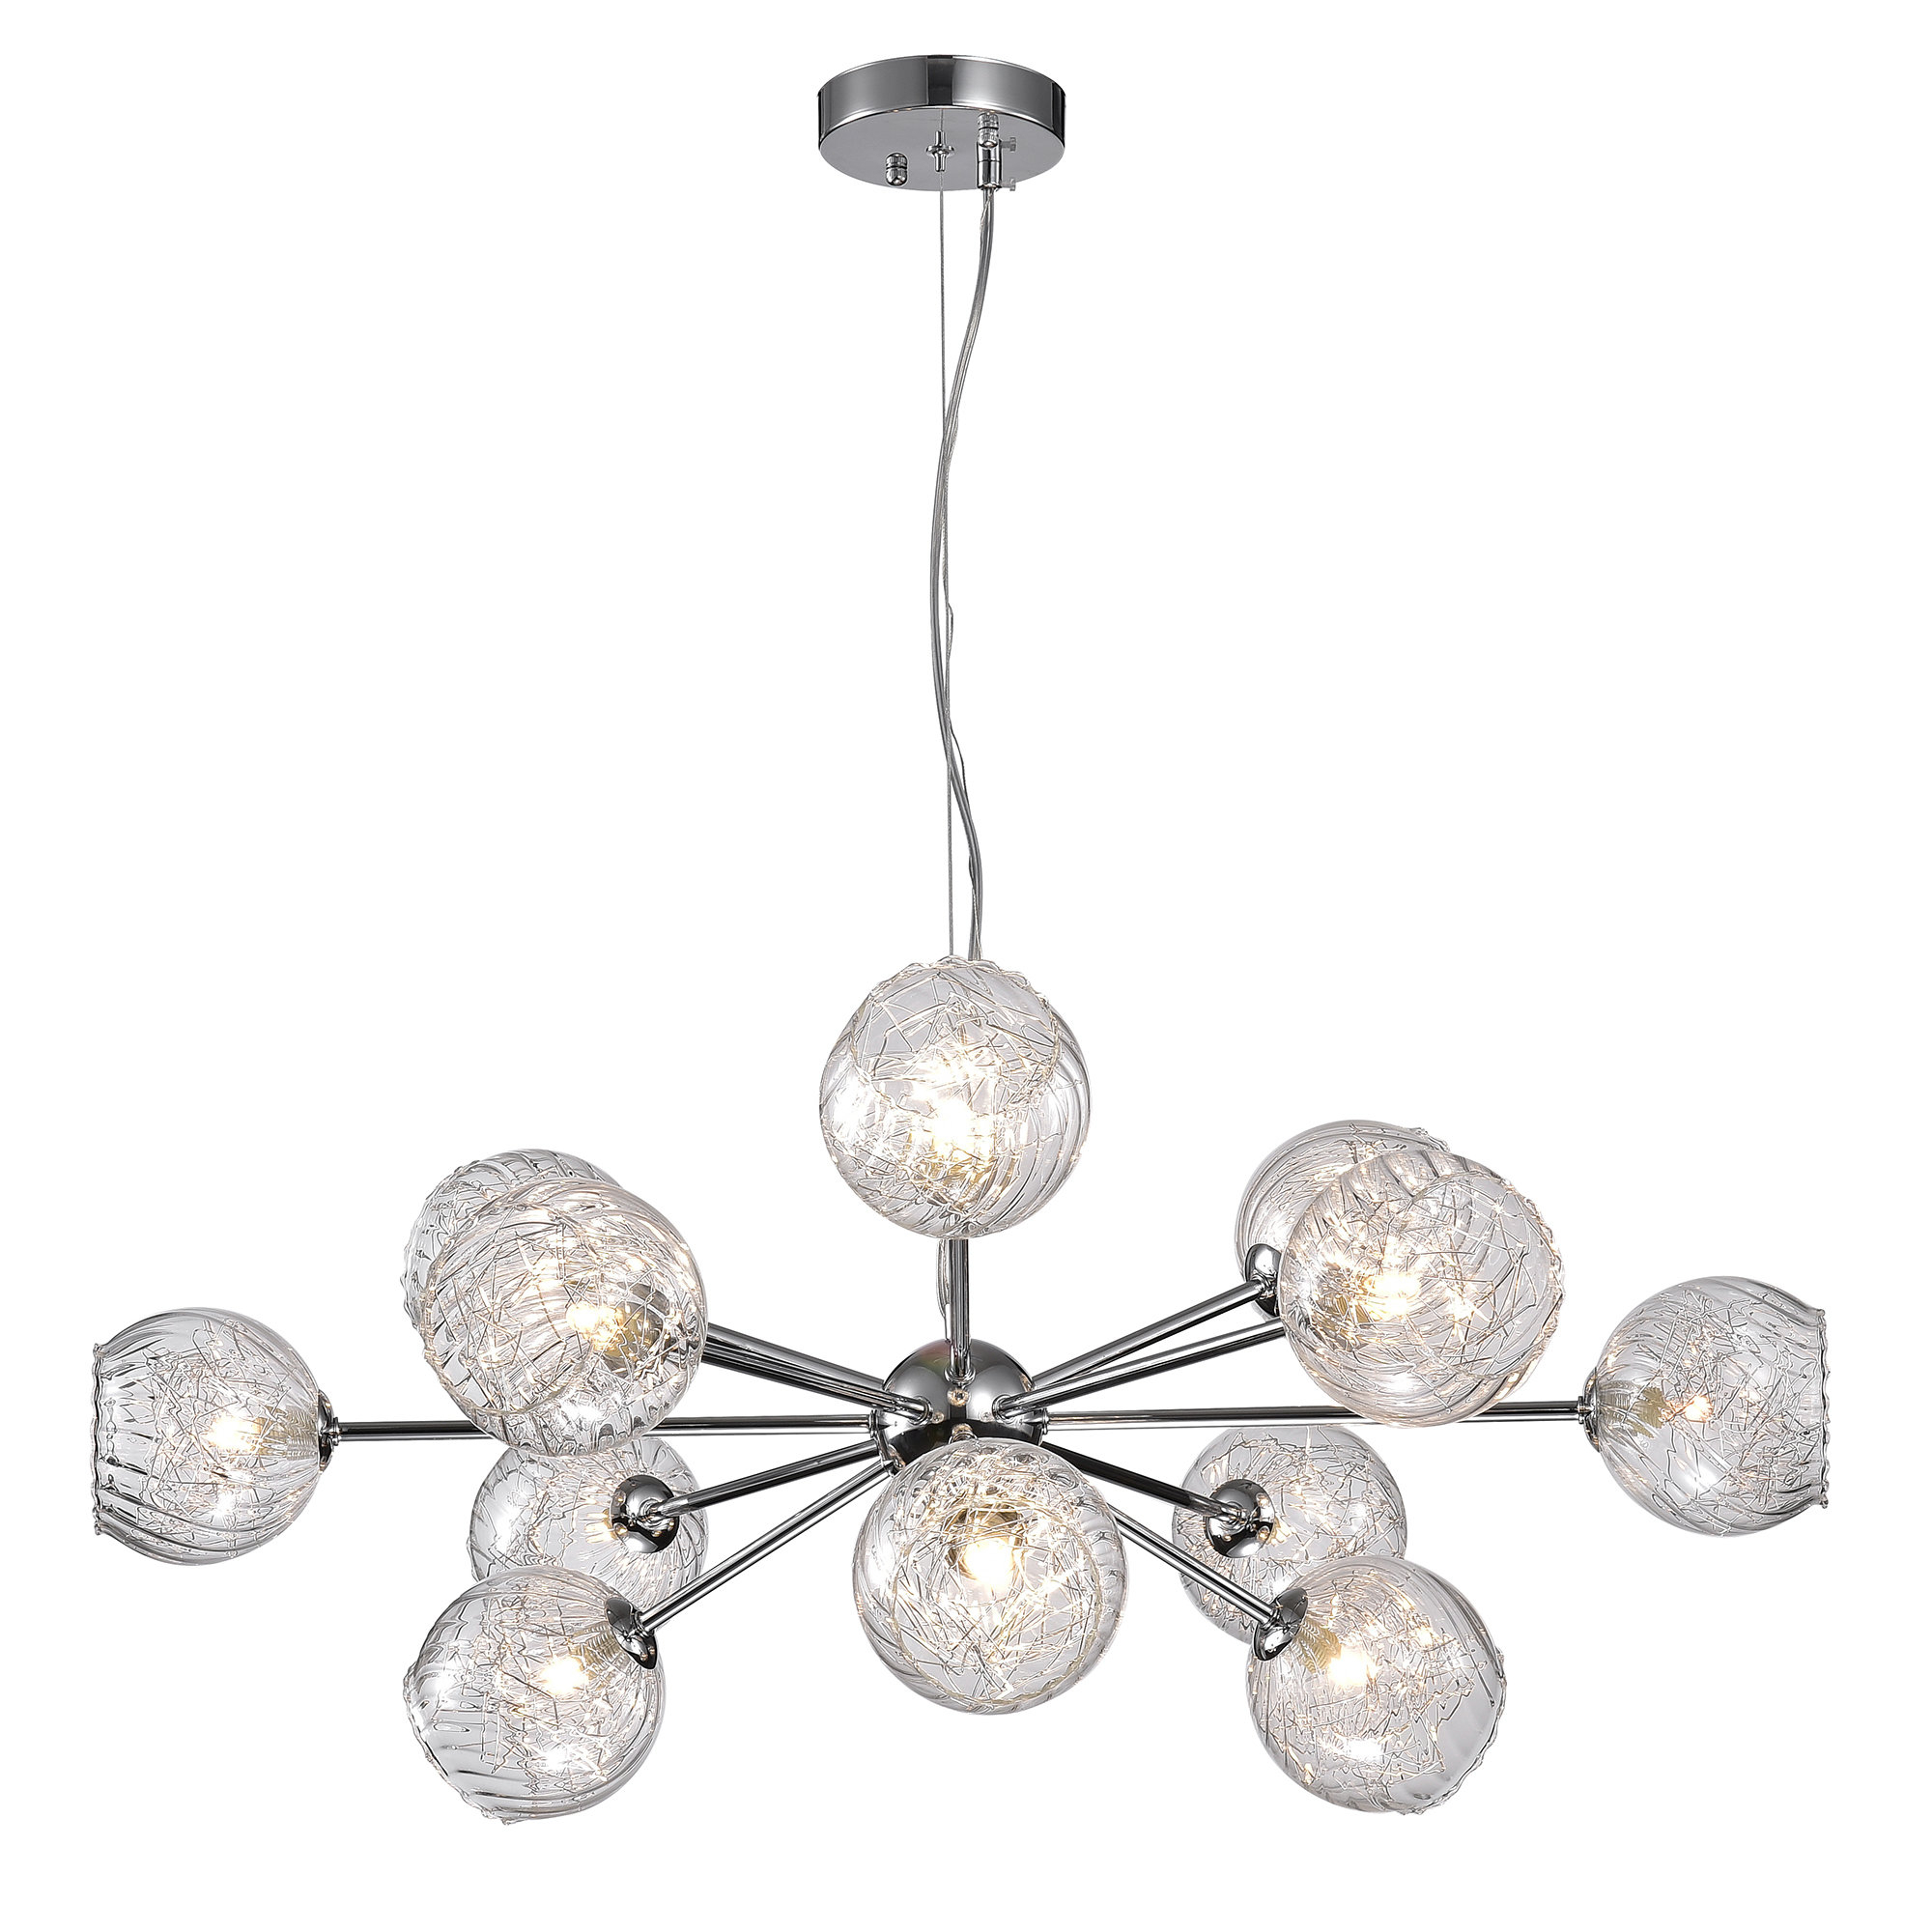 Earleville 12-Light Sputnik Chandelier throughout Recent Asher 12-Light Sputnik Chandeliers